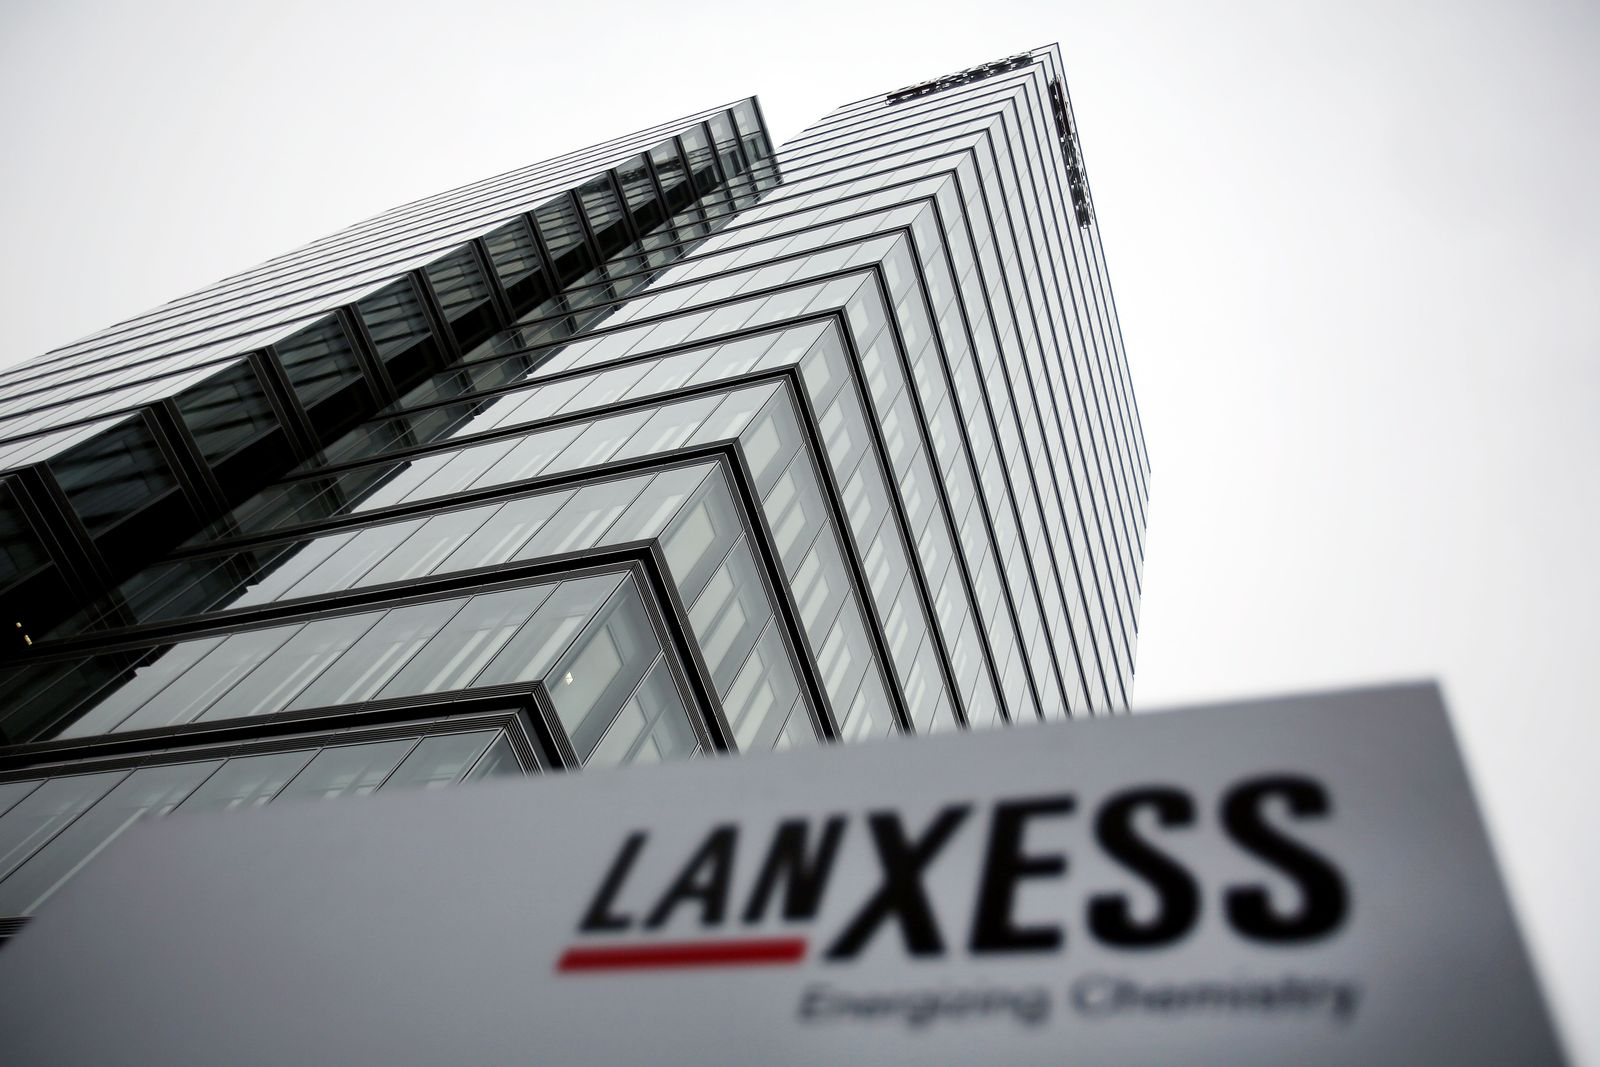 Lanxess; HQ Köln